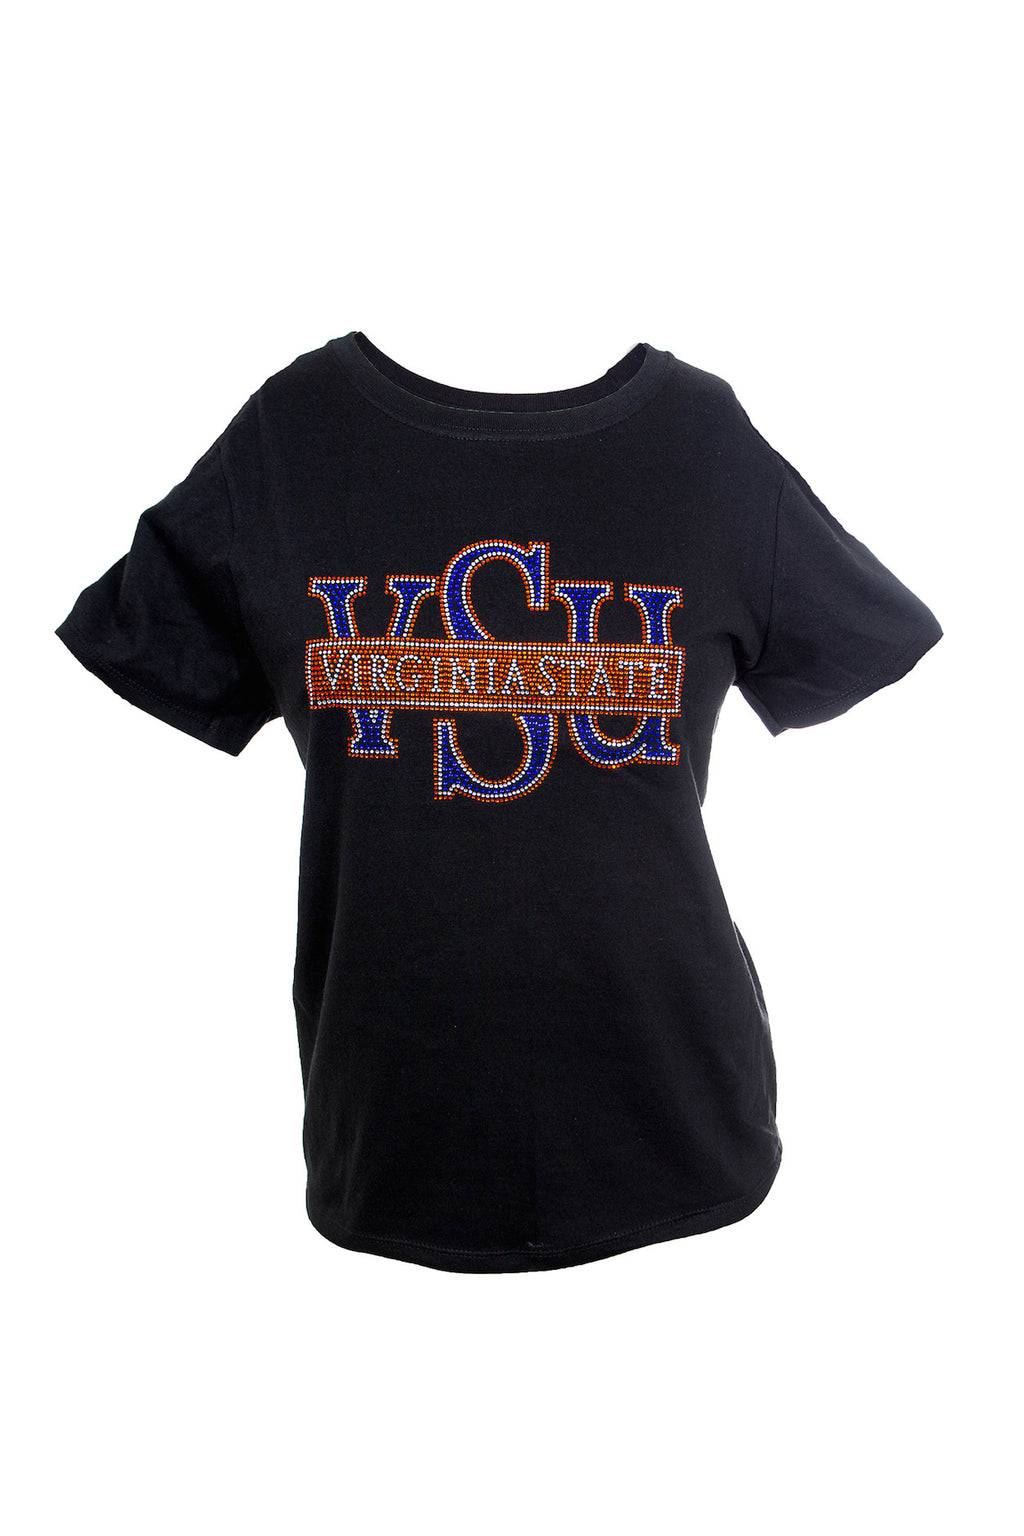 Virginia State University Bling Shirt